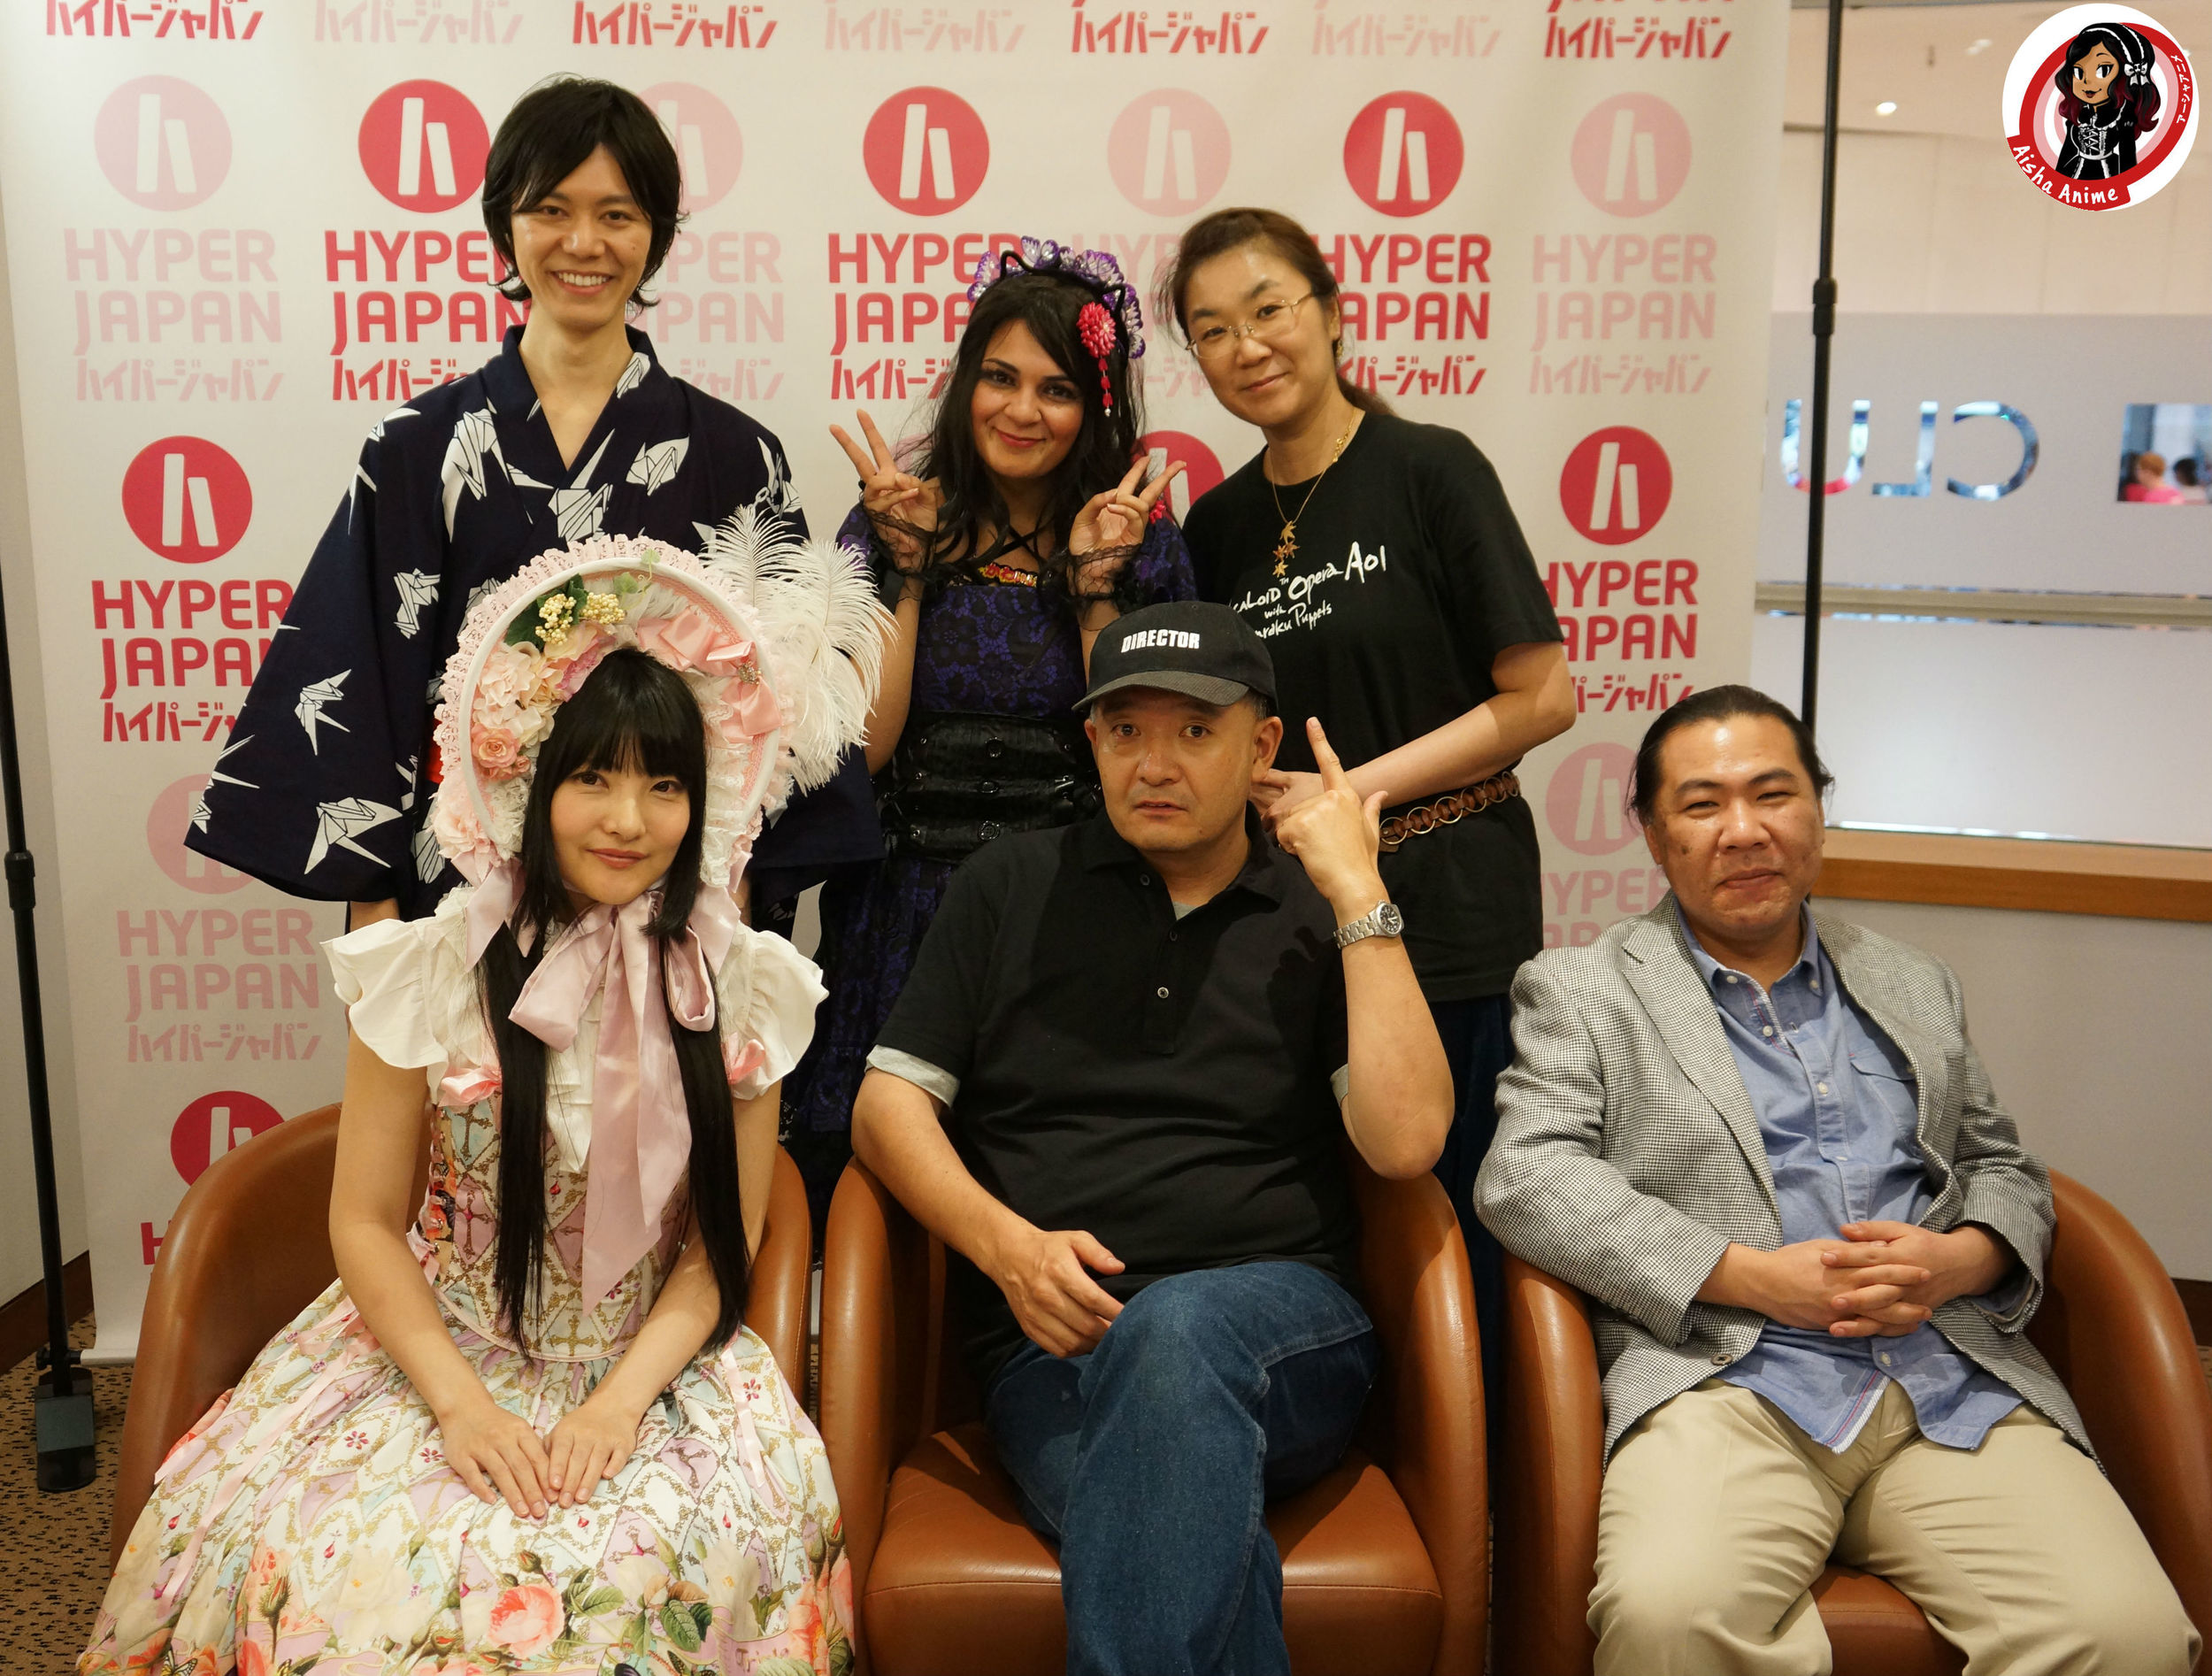 Vocaloid Opera Aoi team, Mr Director loved my Lolita outfit ^_^